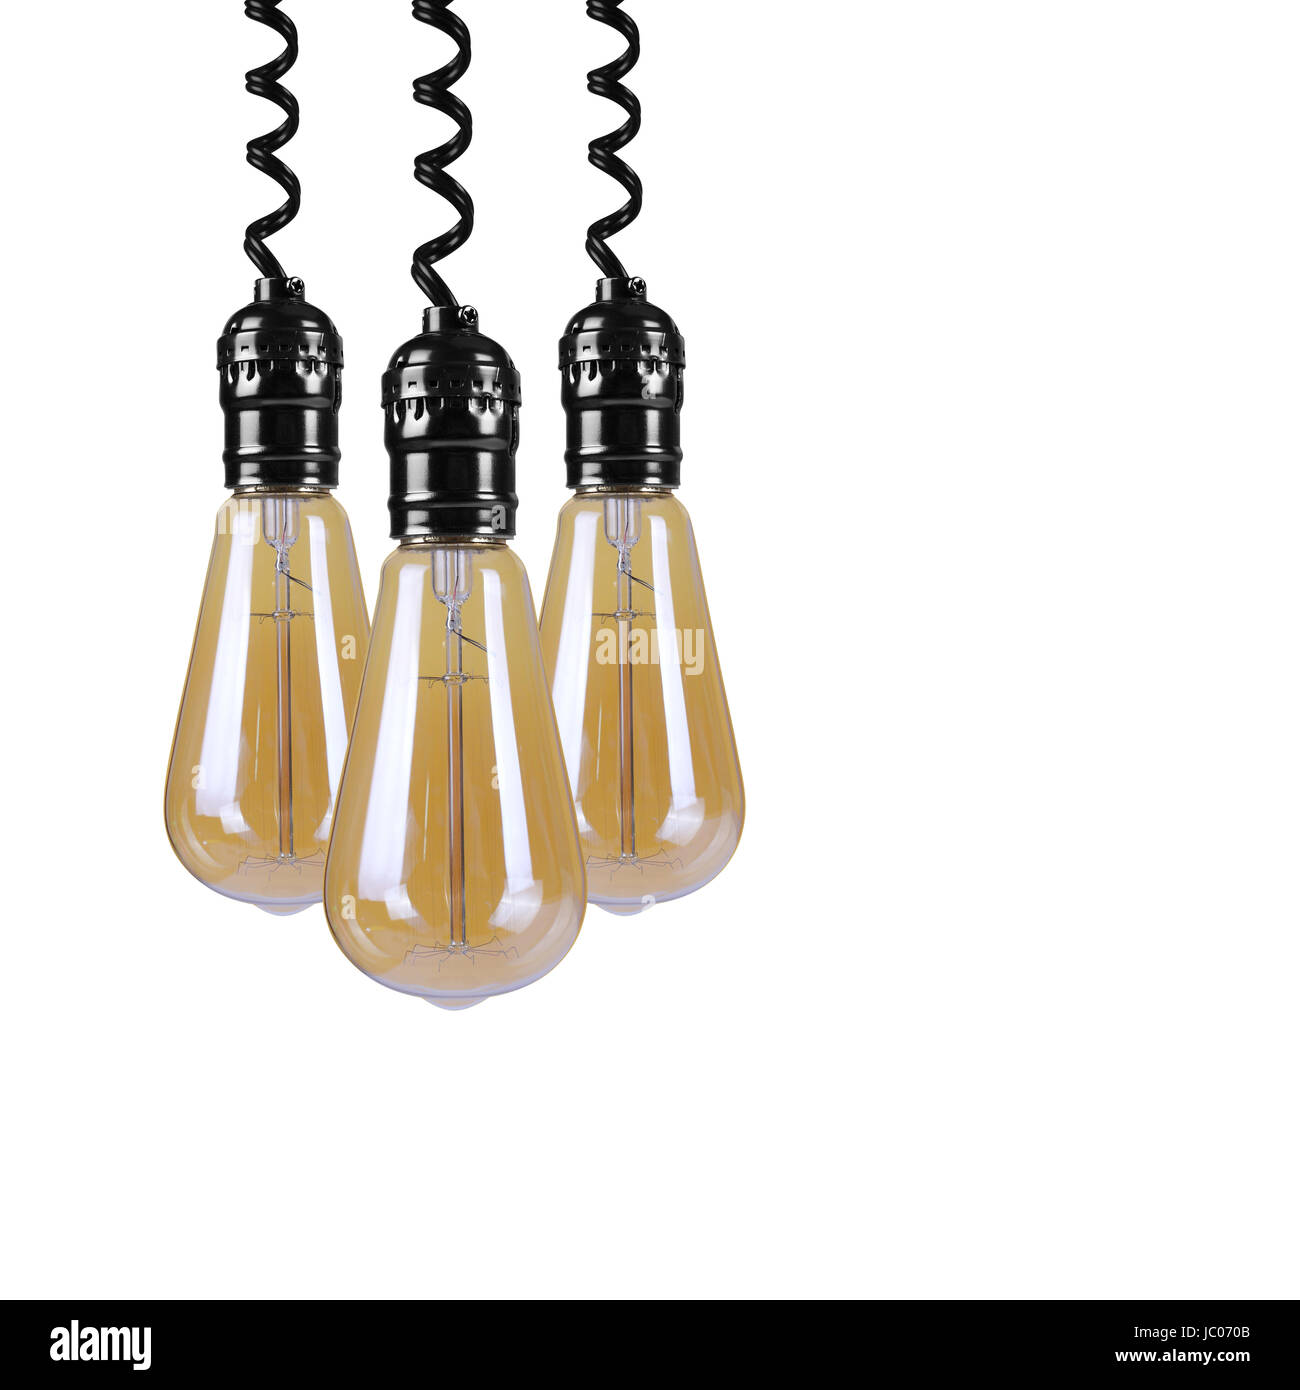 Three Incandescent light bulb hangs down on top on a white background. - Stock Image